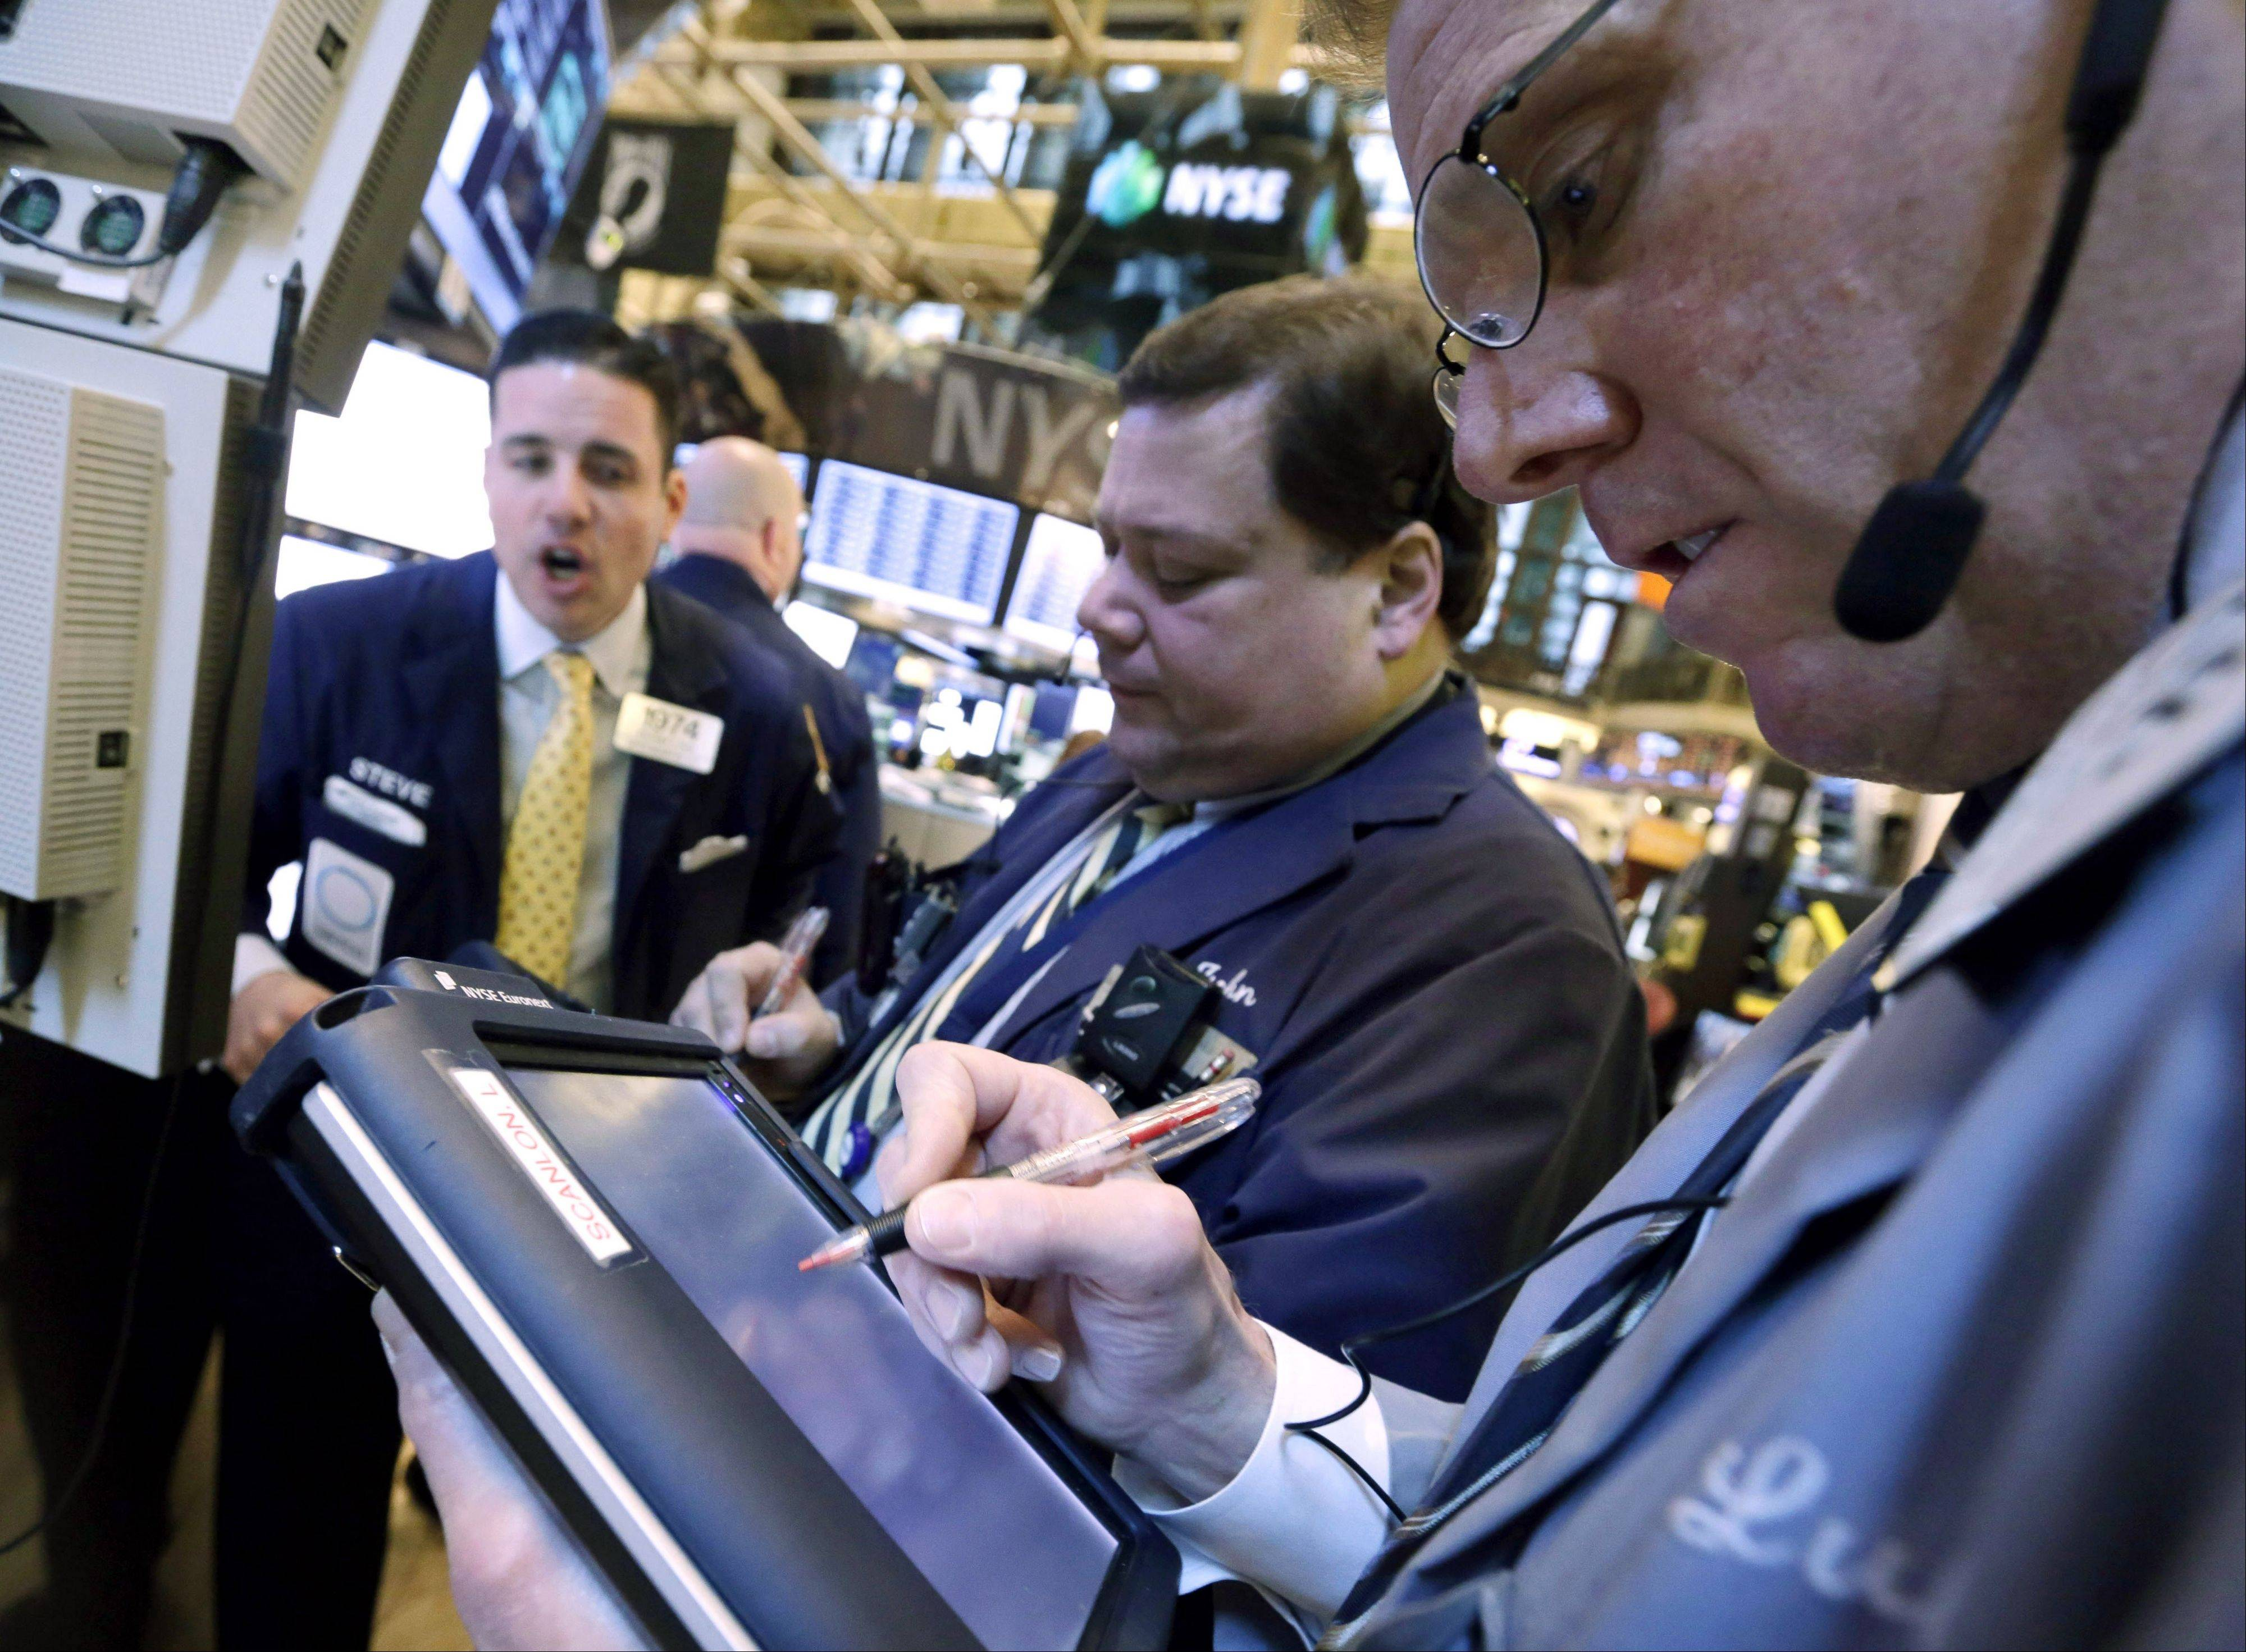 U.S. stocks advanced Tuesday, rebounding from earlier losses in the Standard & Poor�s 500 Index, as a rally in retail and transportation companies overshadowed concern about discussions on raising the debt ceiling.